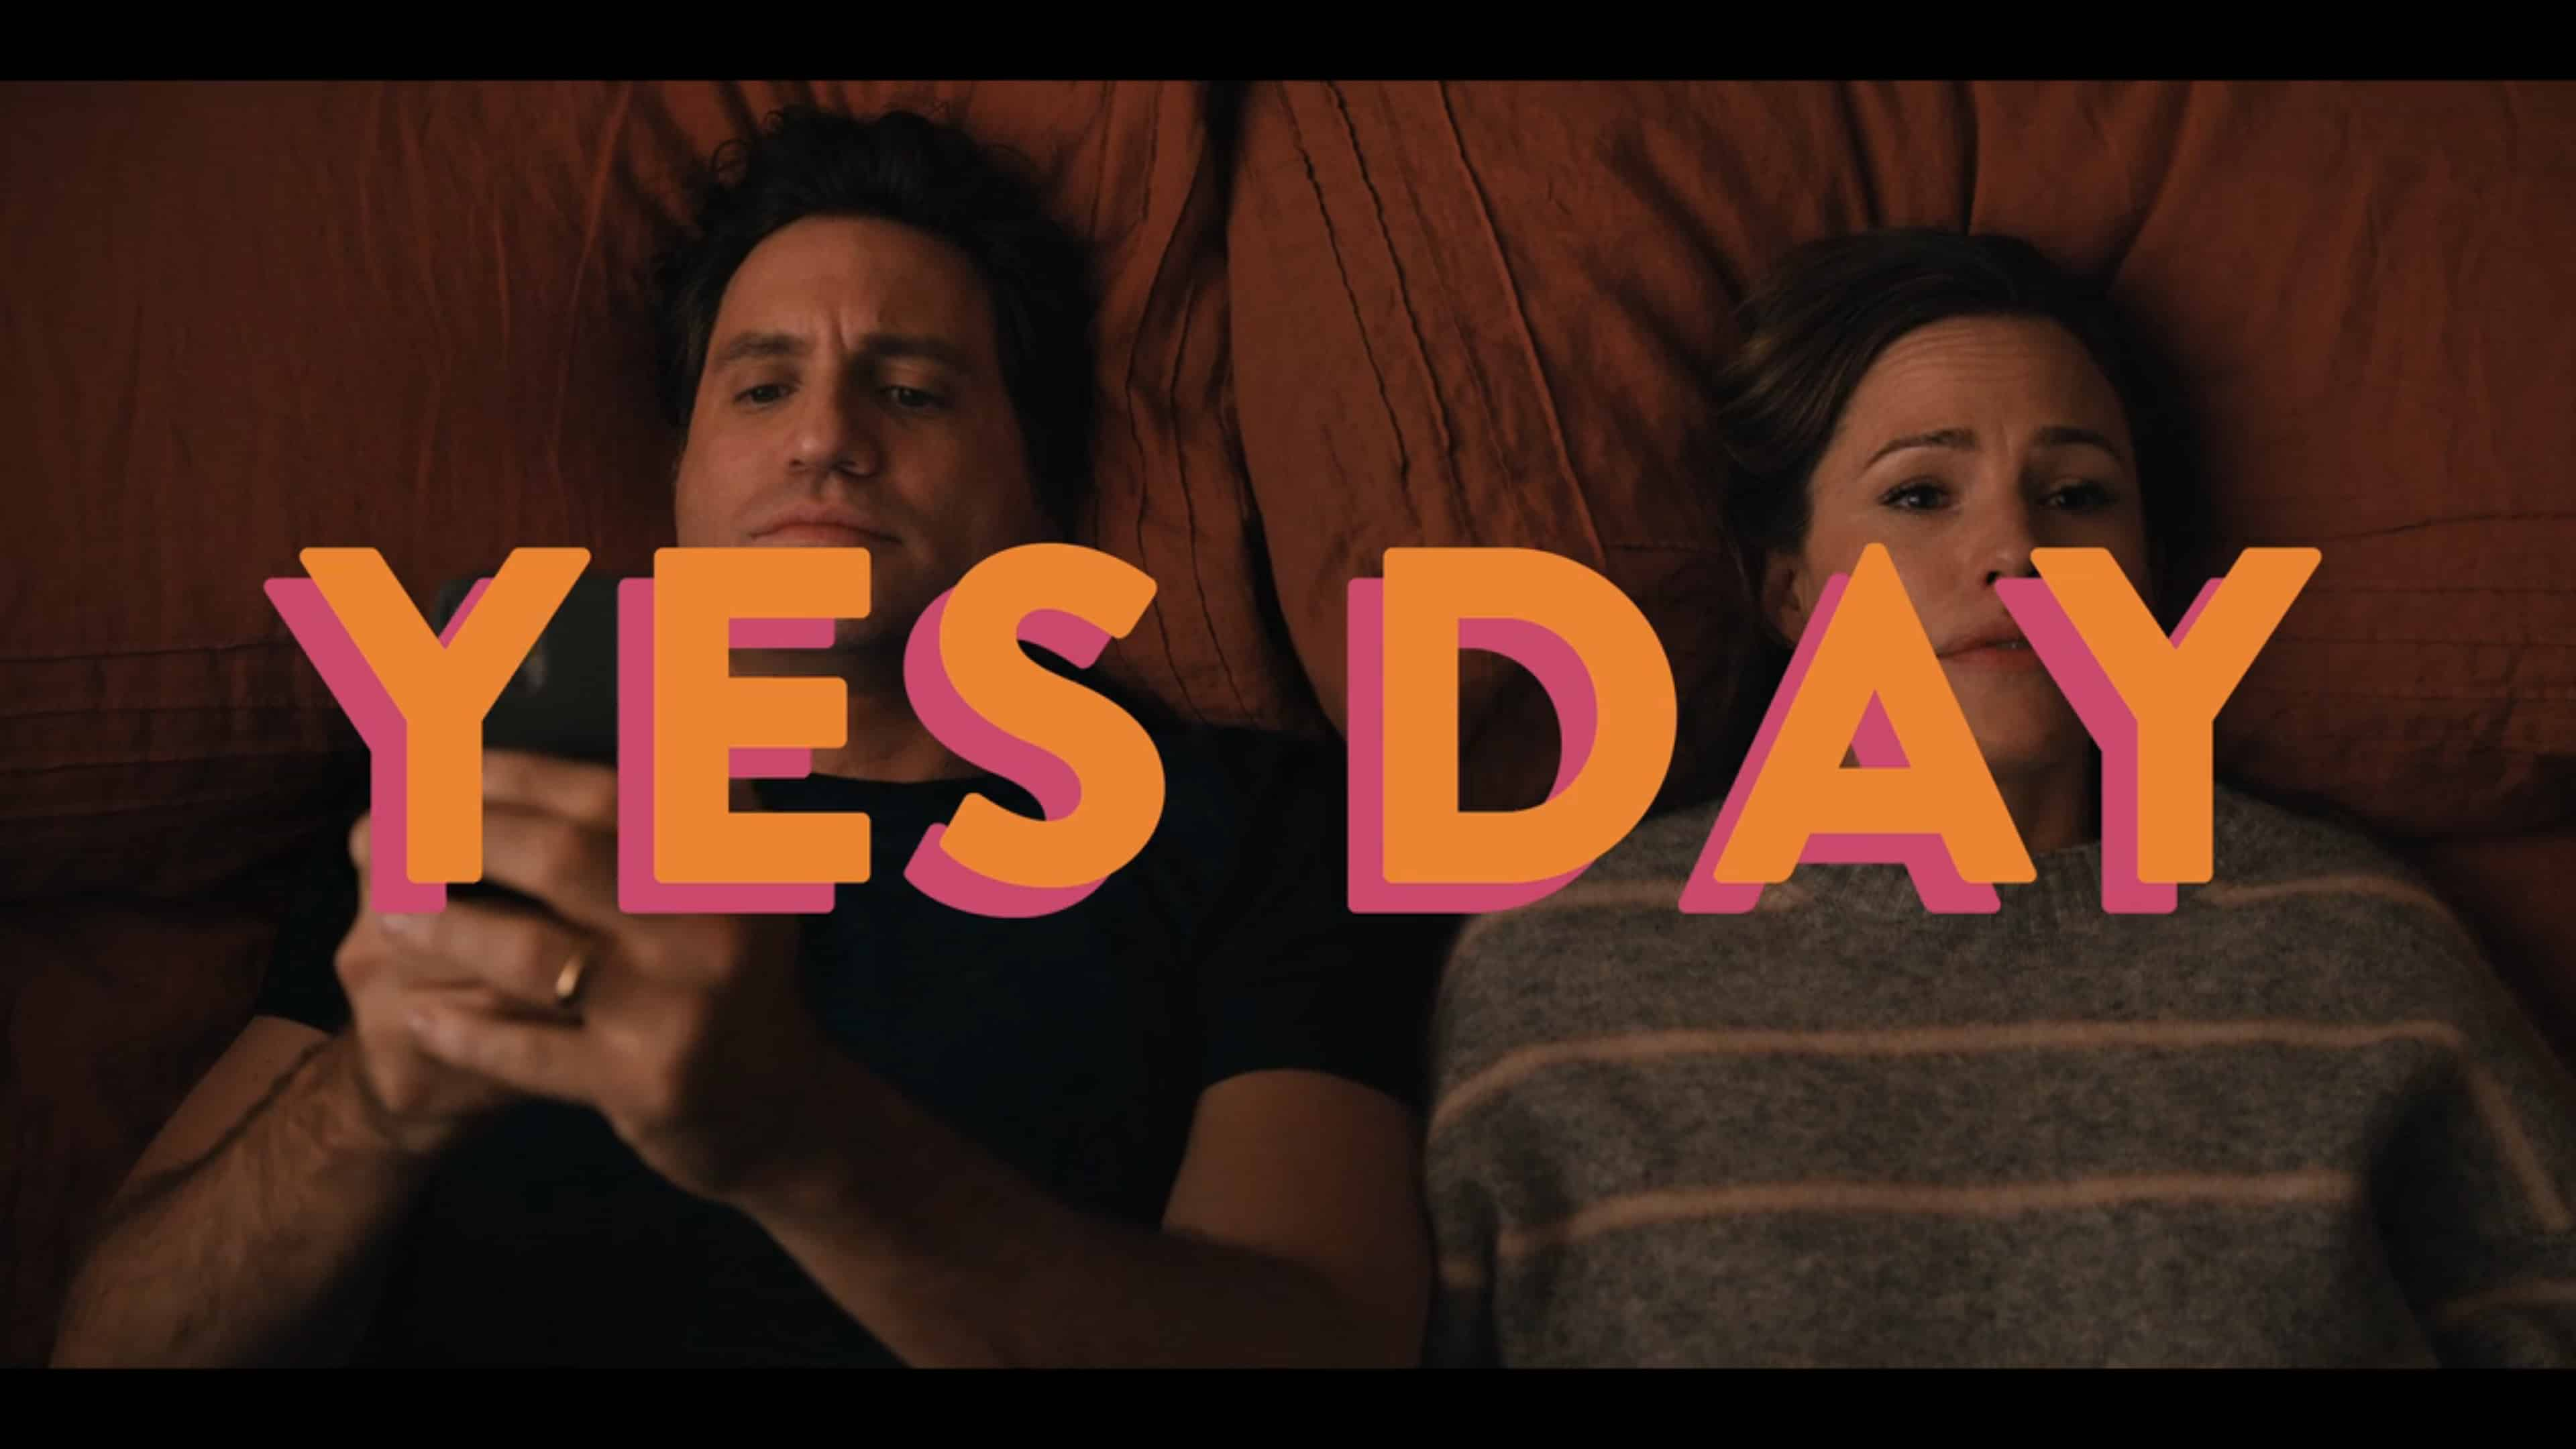 Carlos (Edgar Ramirez) and Allison (Jennifer Garner) on the bed, with Carlos on his phone